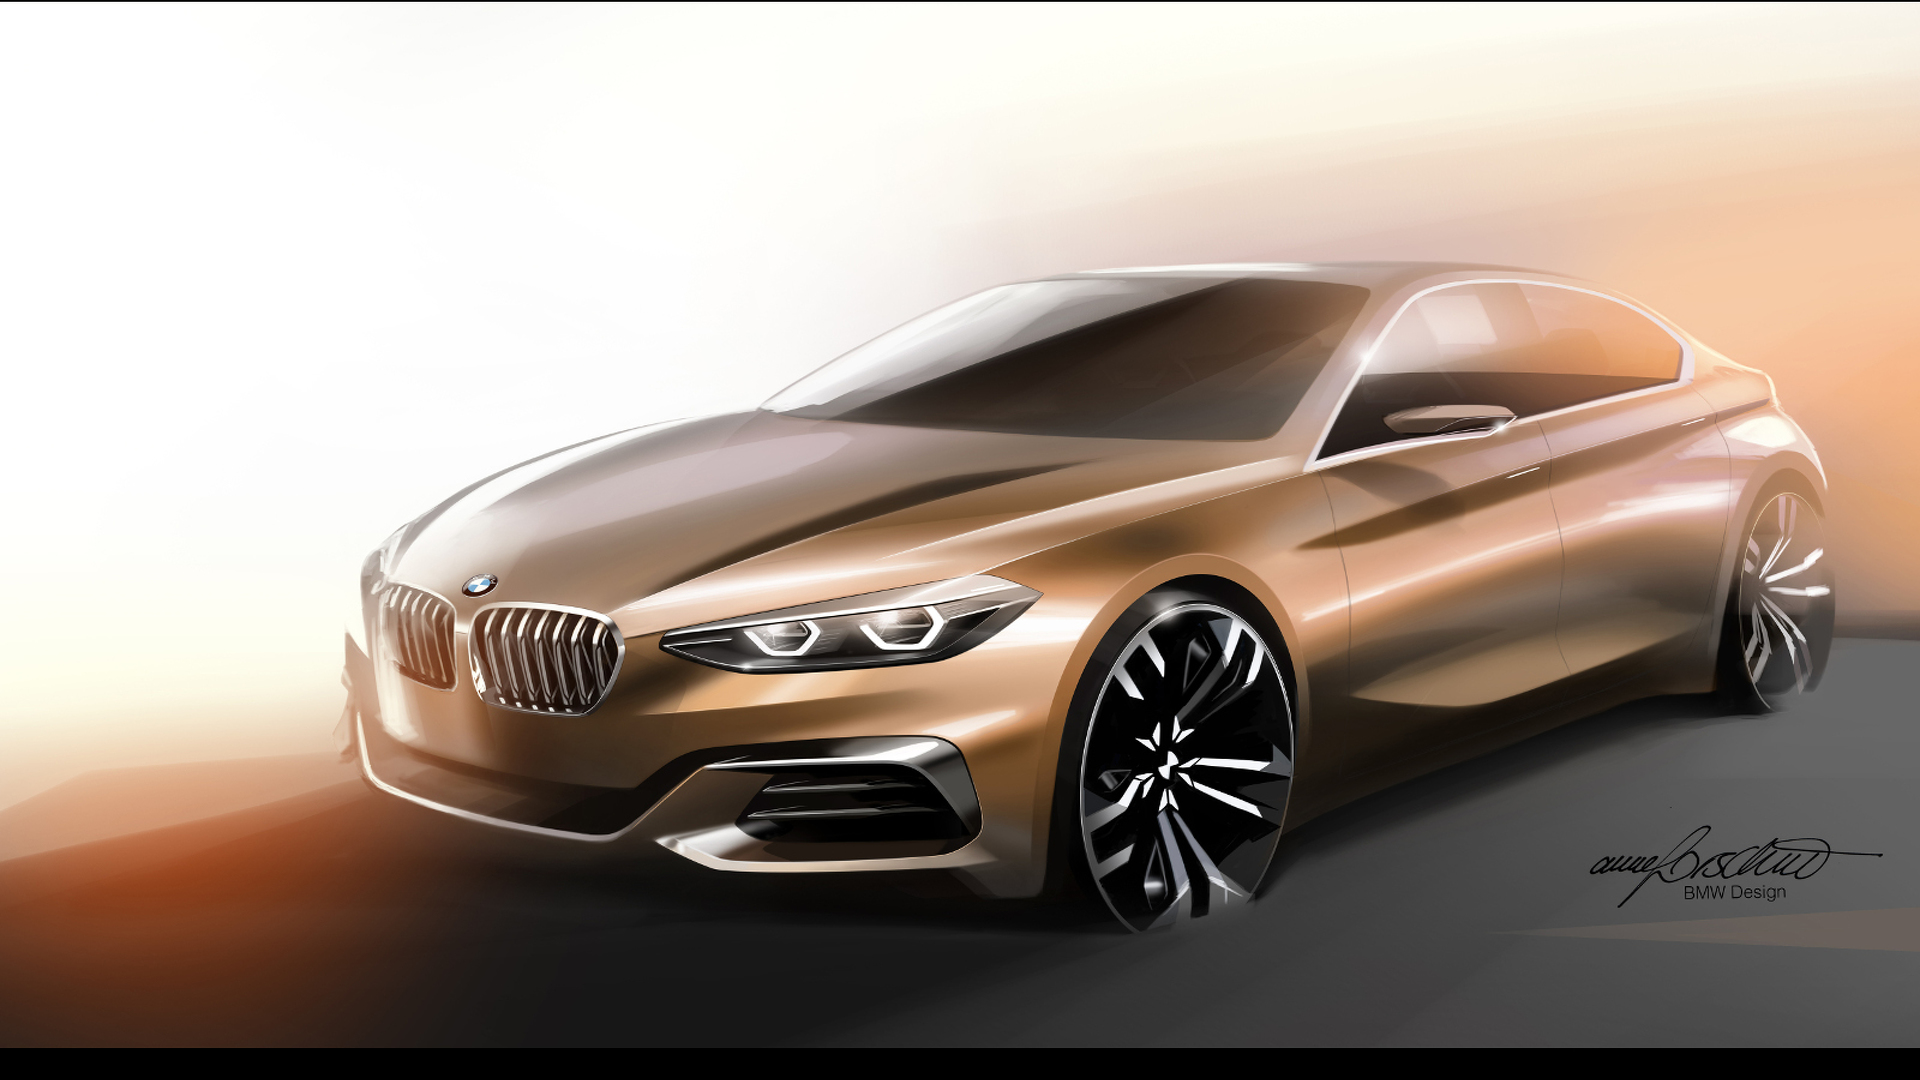 bmw 2 series gran coupe coming in 2019 with rwd. Black Bedroom Furniture Sets. Home Design Ideas